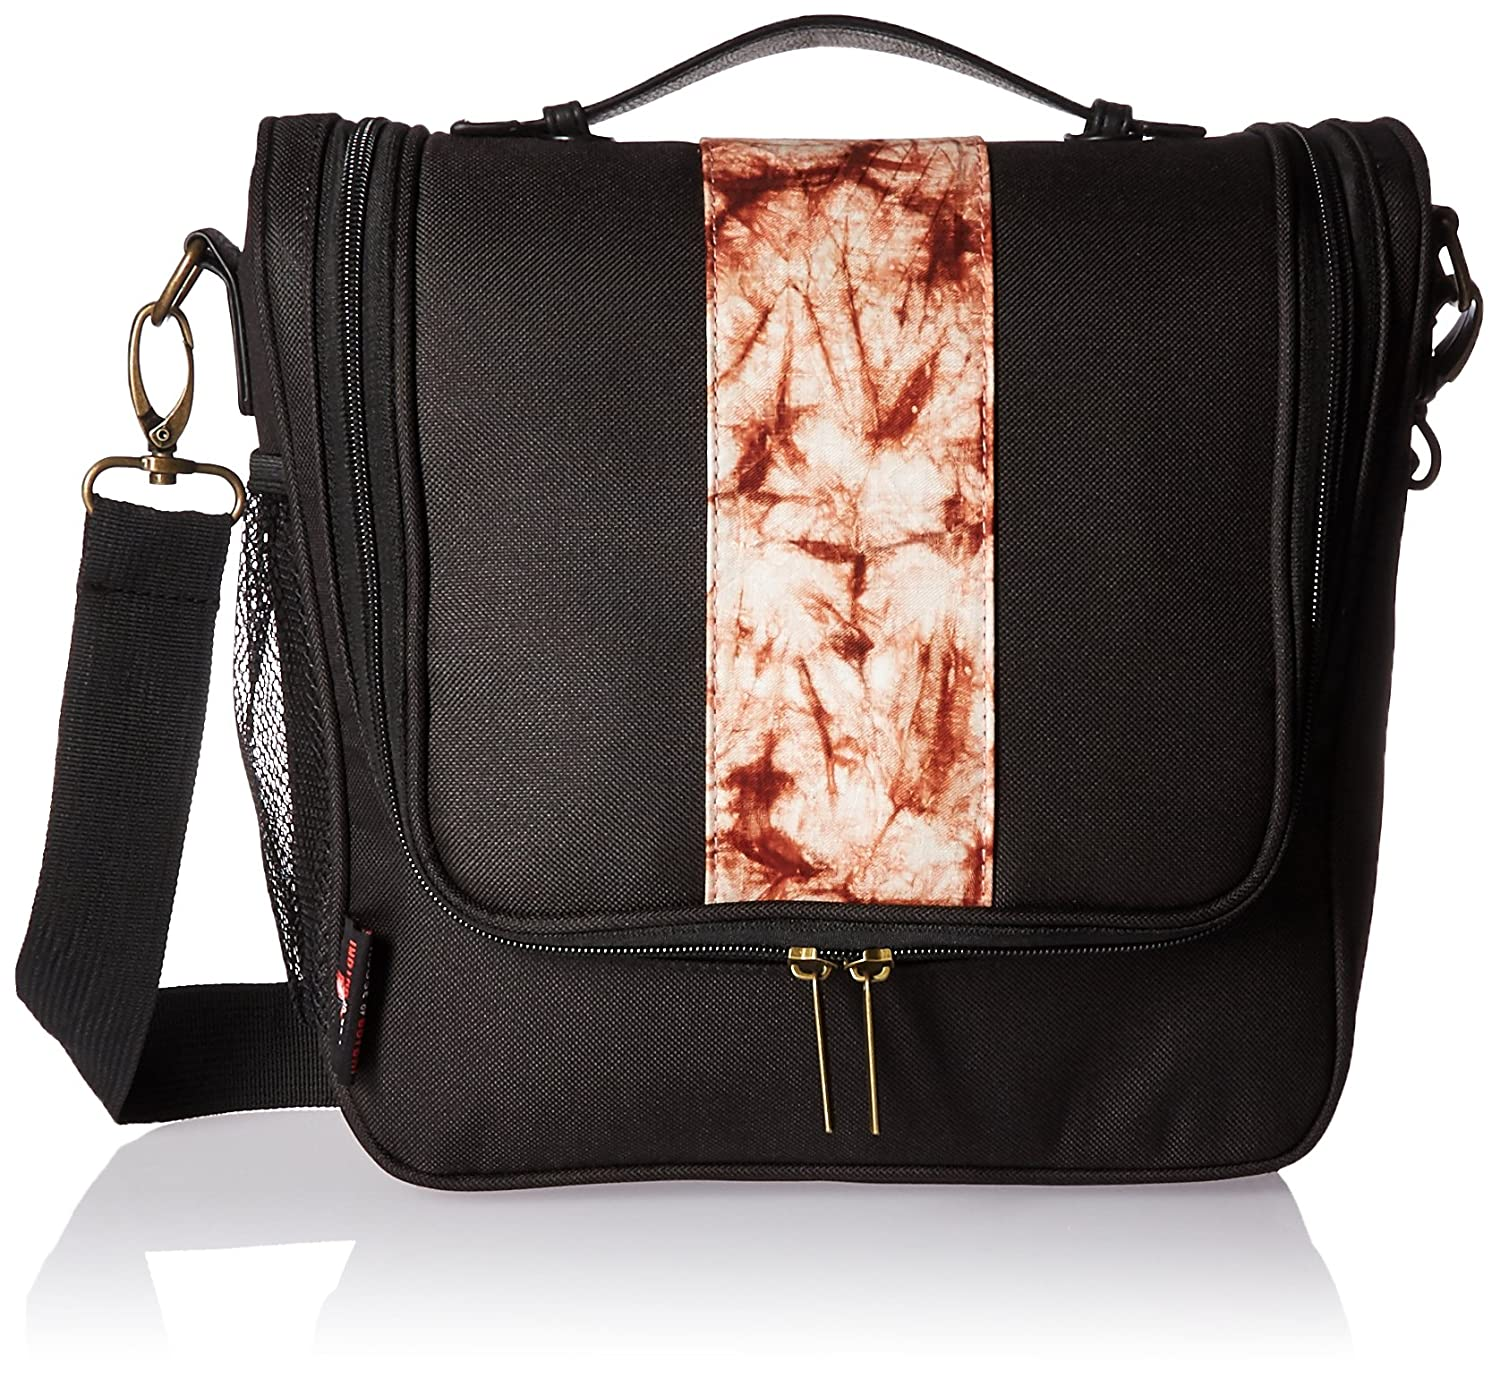 House of Botori Ore Jetsetter, Black and Red